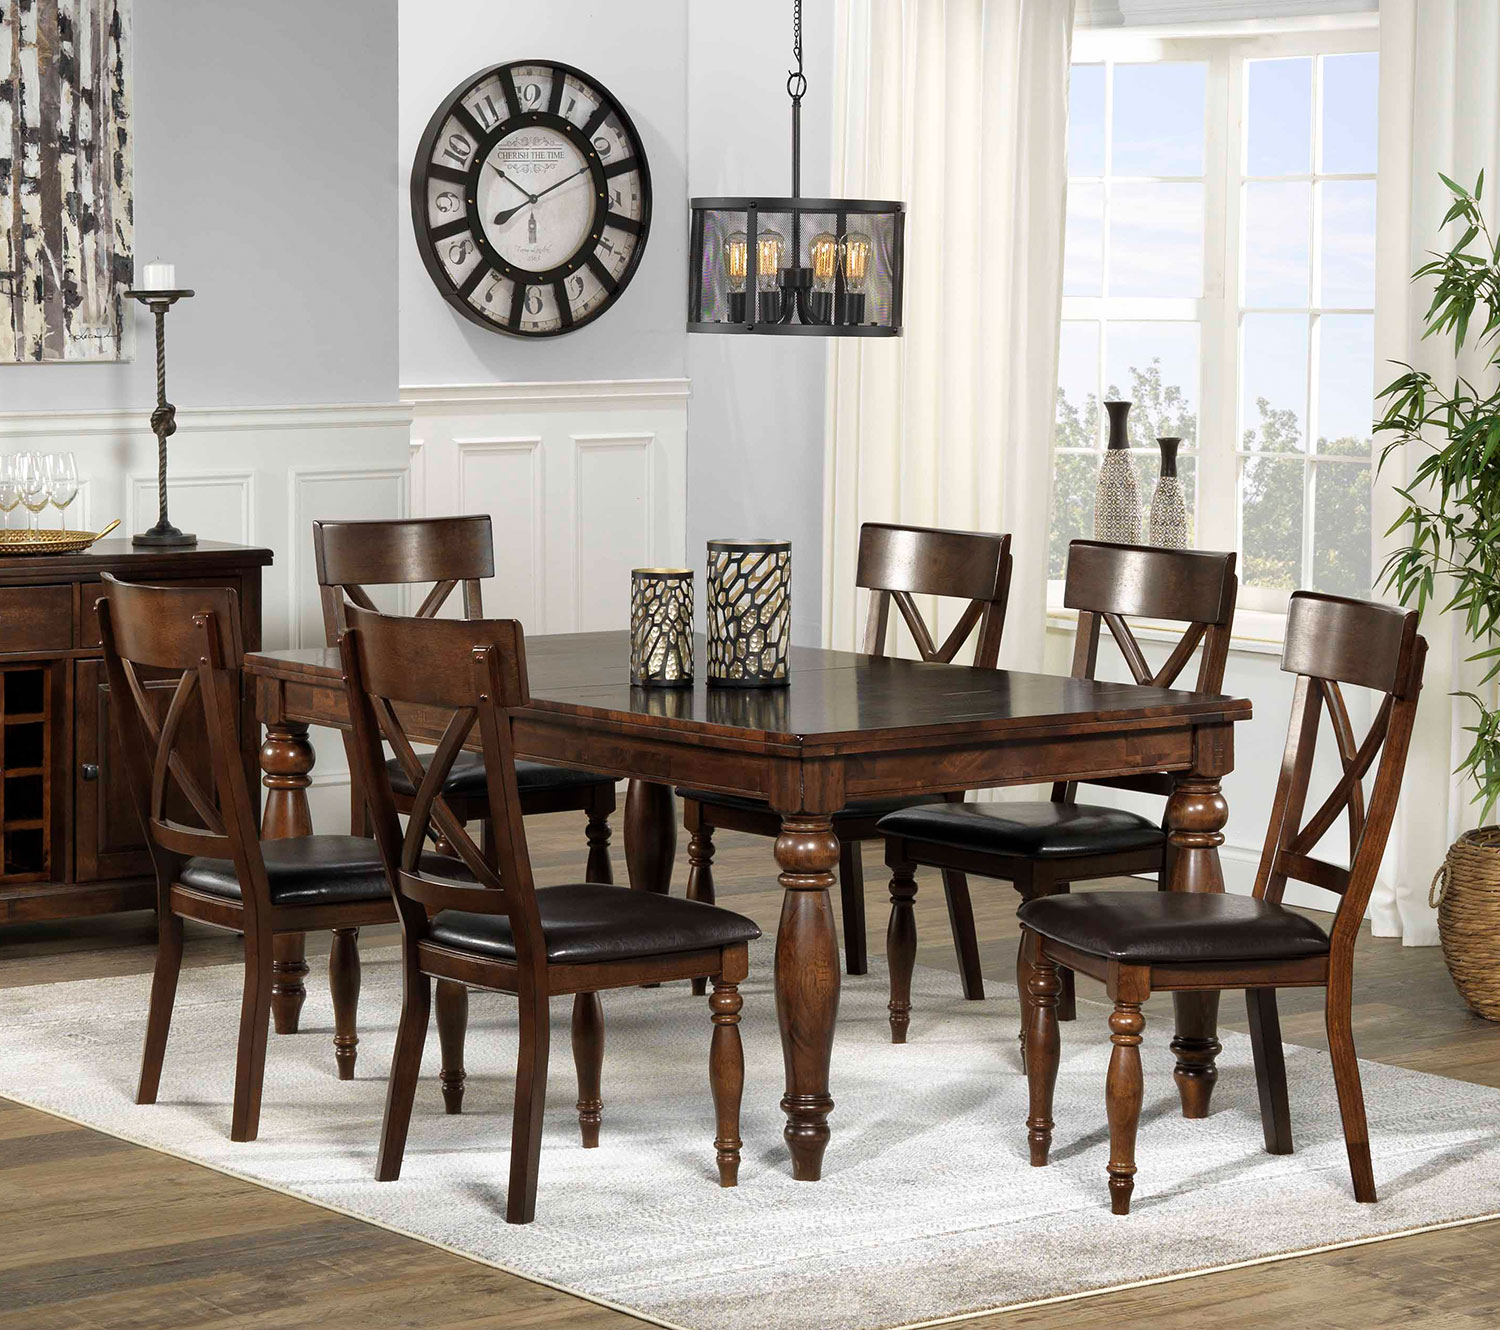 Kingstown 7Piece Dining Room Set  Chocolate  Leons